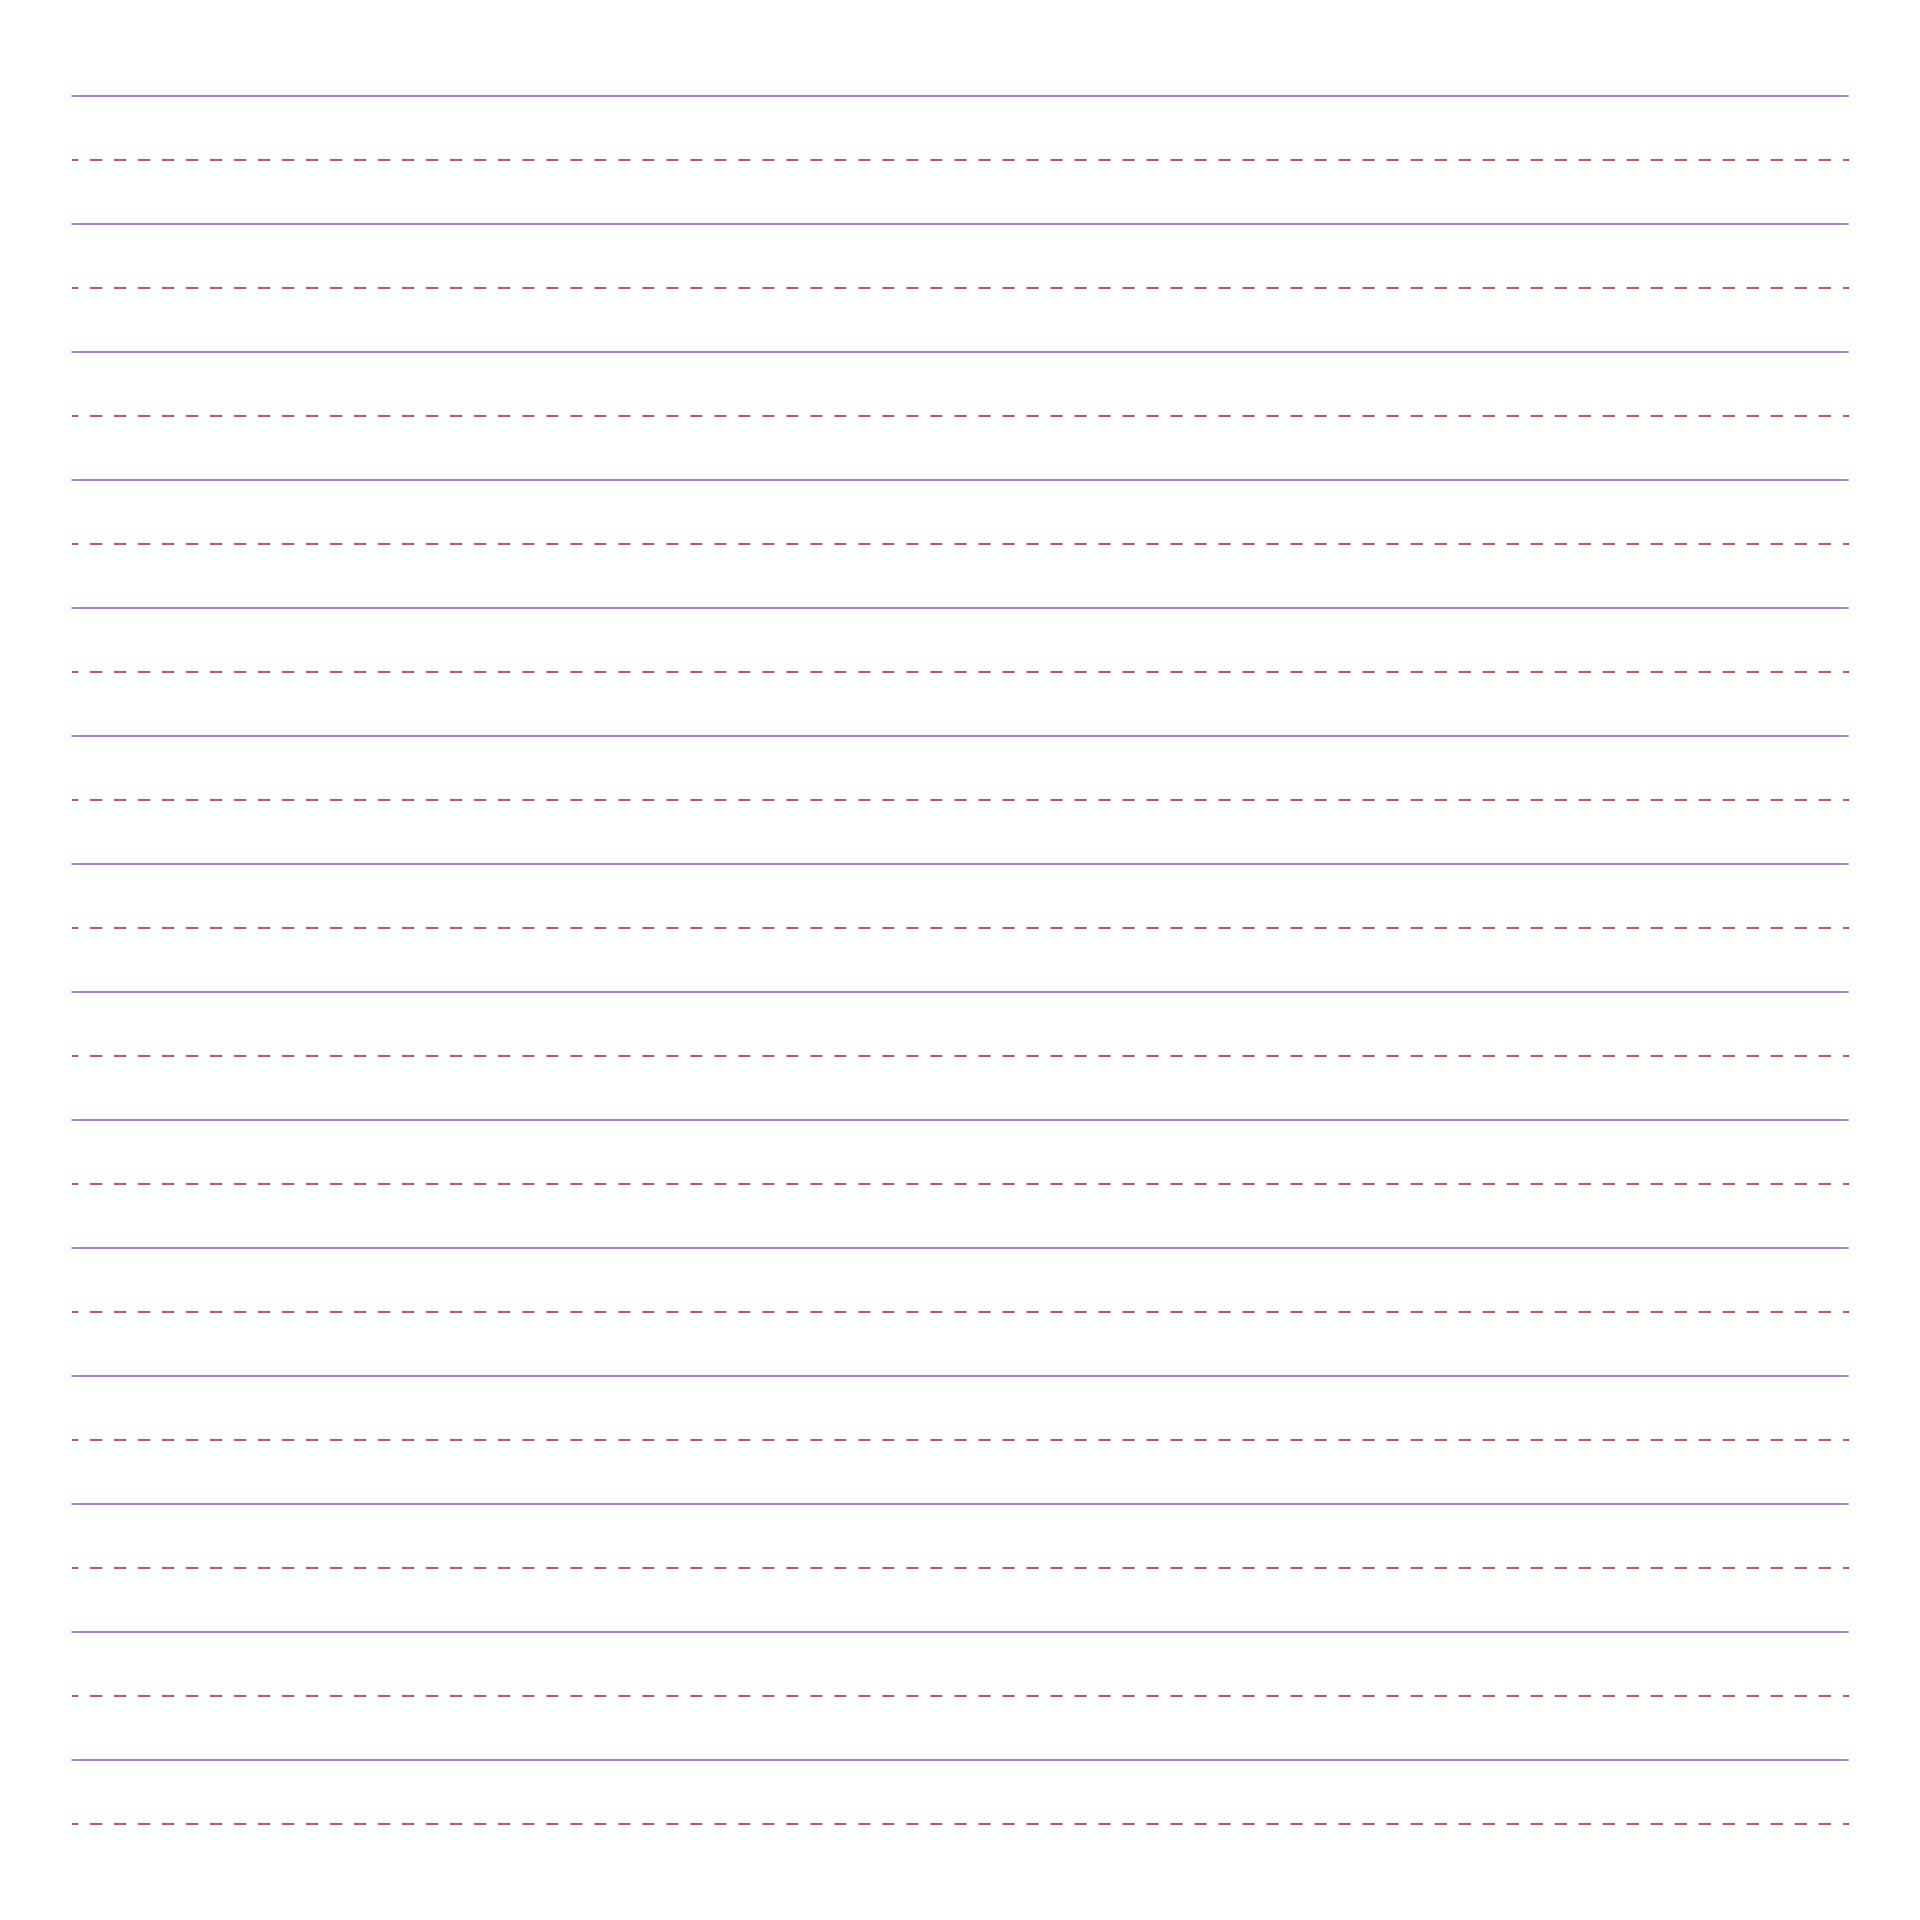 Second Grade Writing Paper Printable